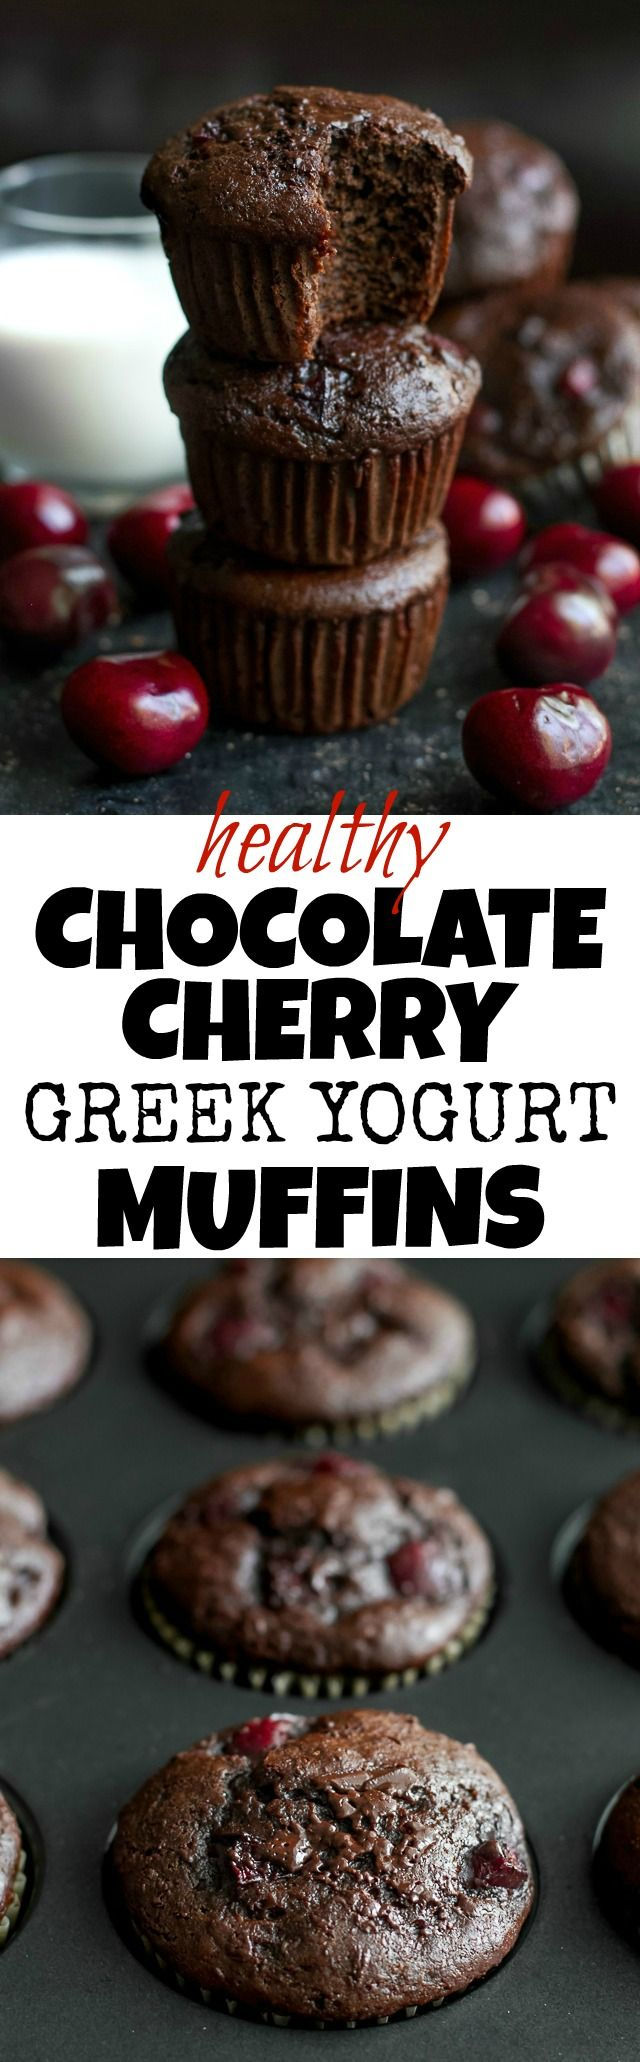 Chocolate Cherry Greek Yogurt Muffins - so decadently delicious that you'd never believe they're naturally sweetened and made without any butter or oil!   runningwithspoons.com